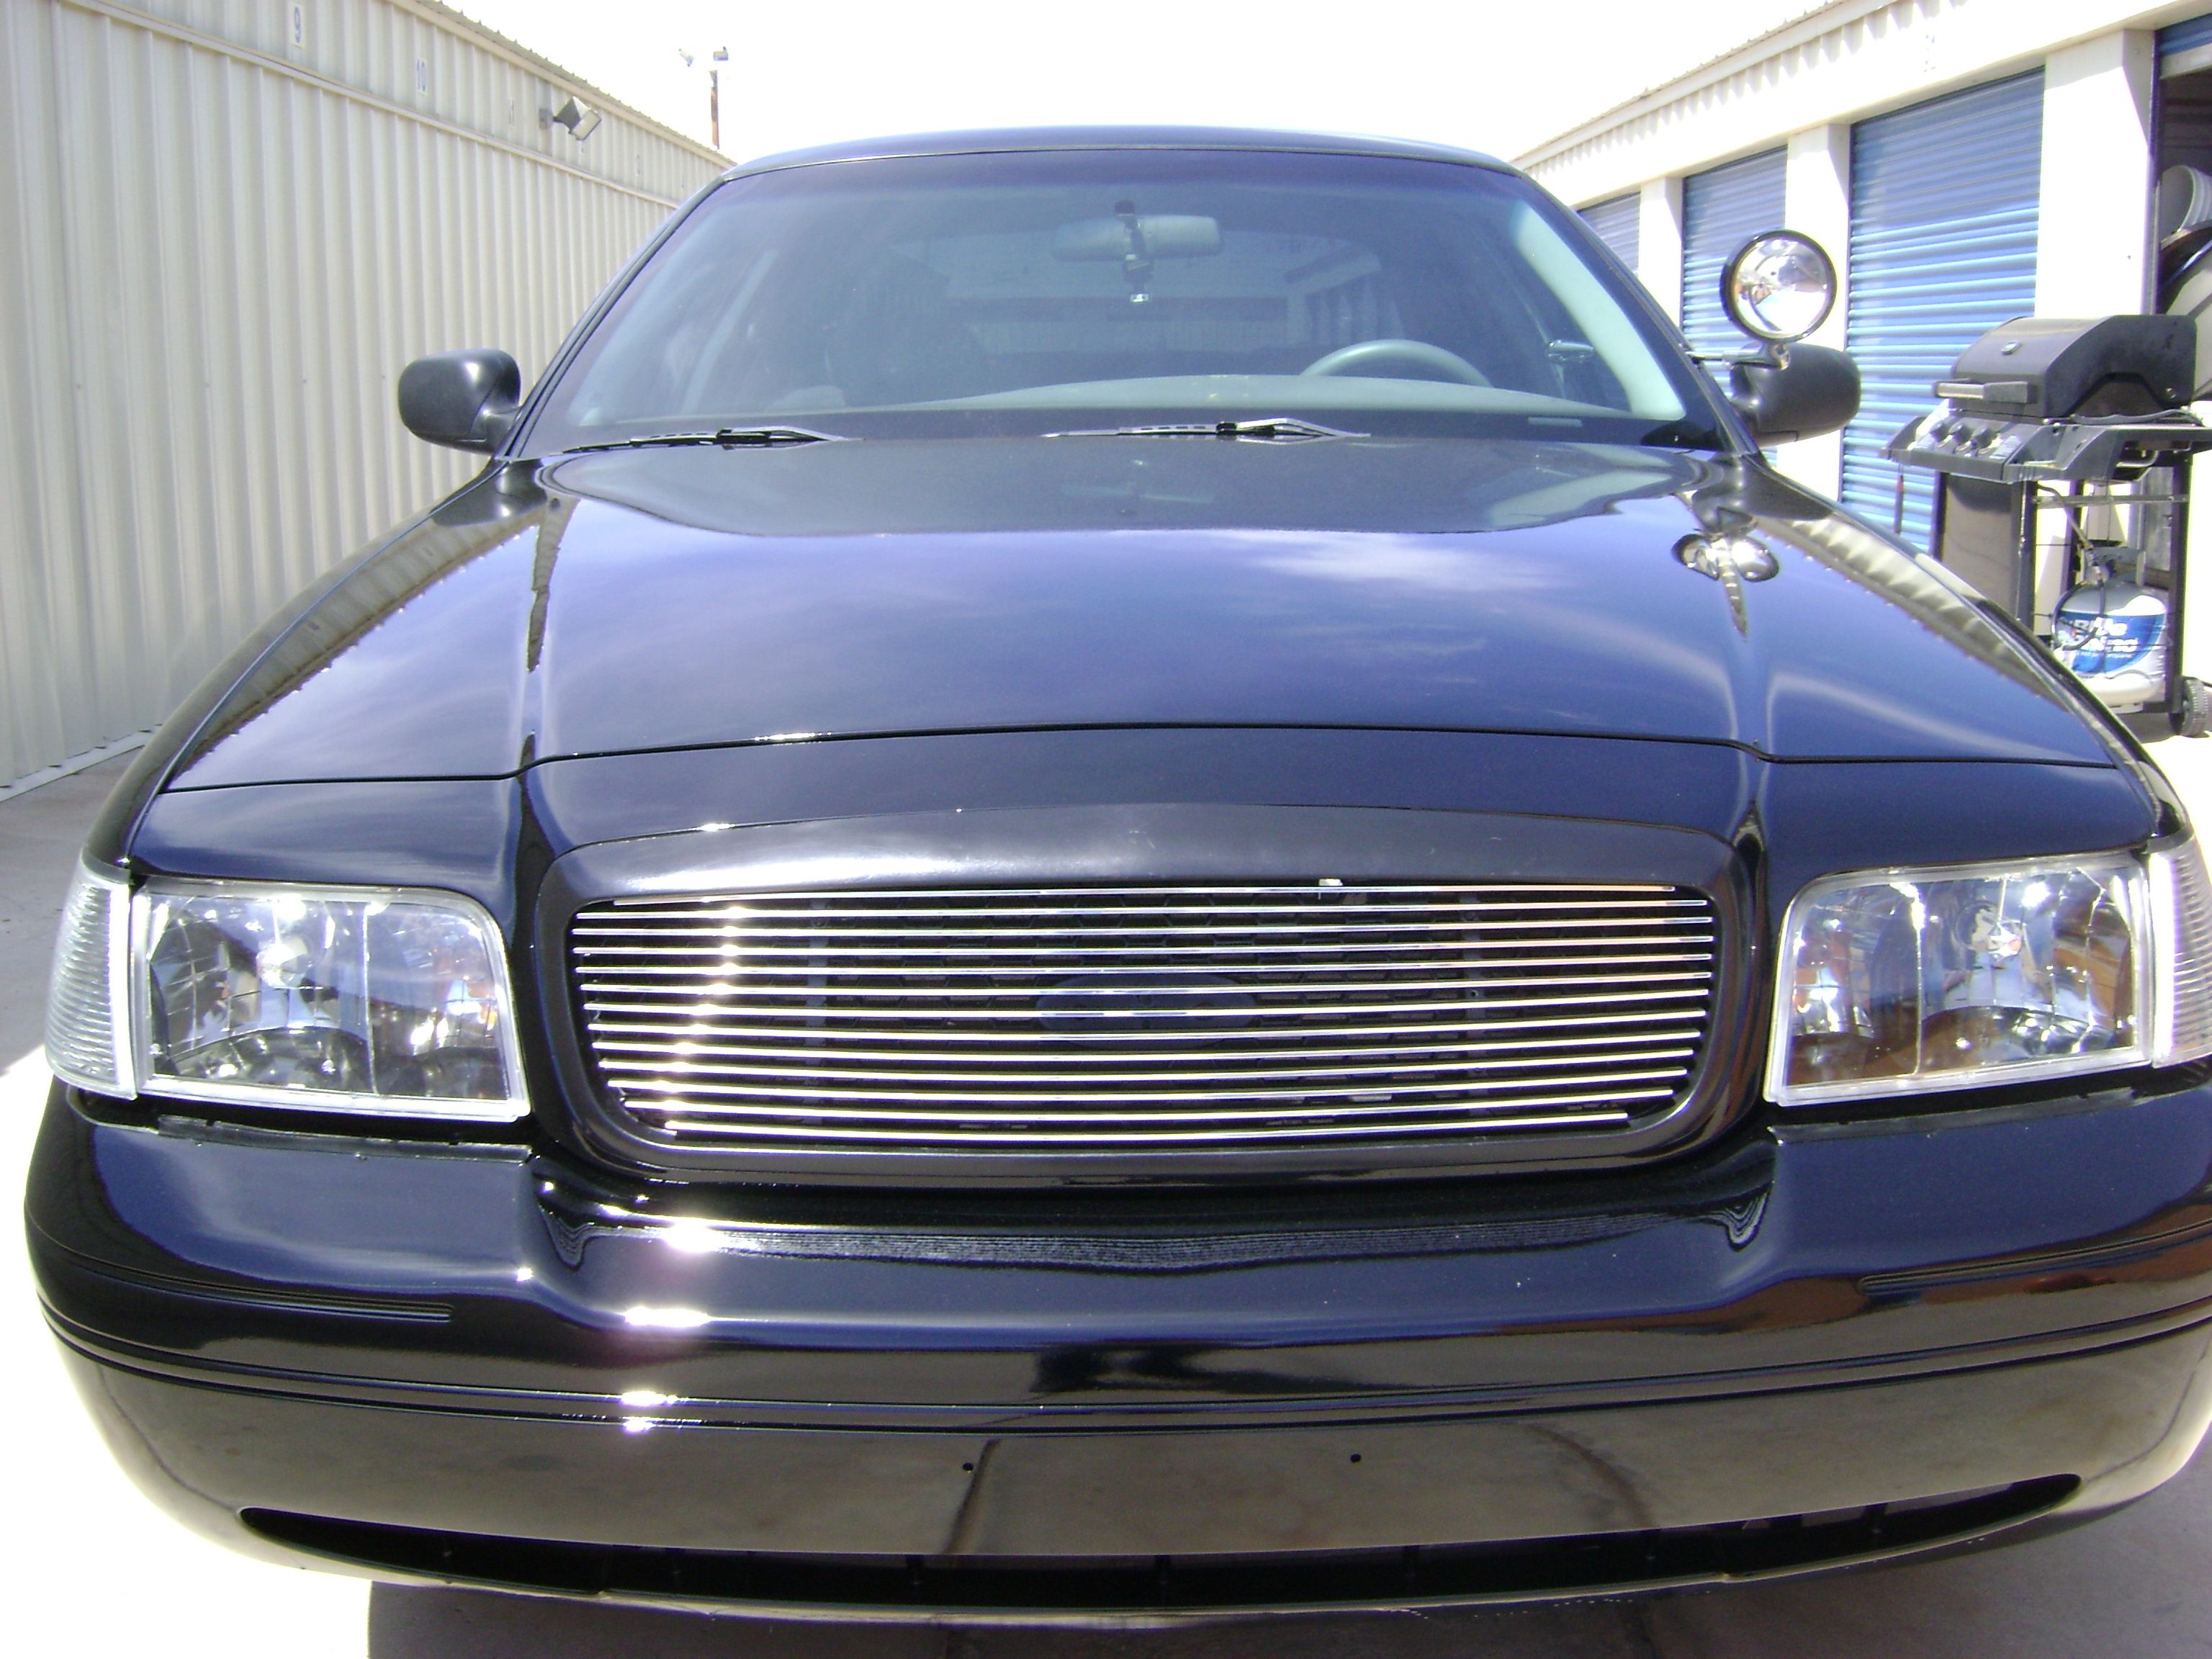 2000 ford crown victoria with polished billet grille by genx trims